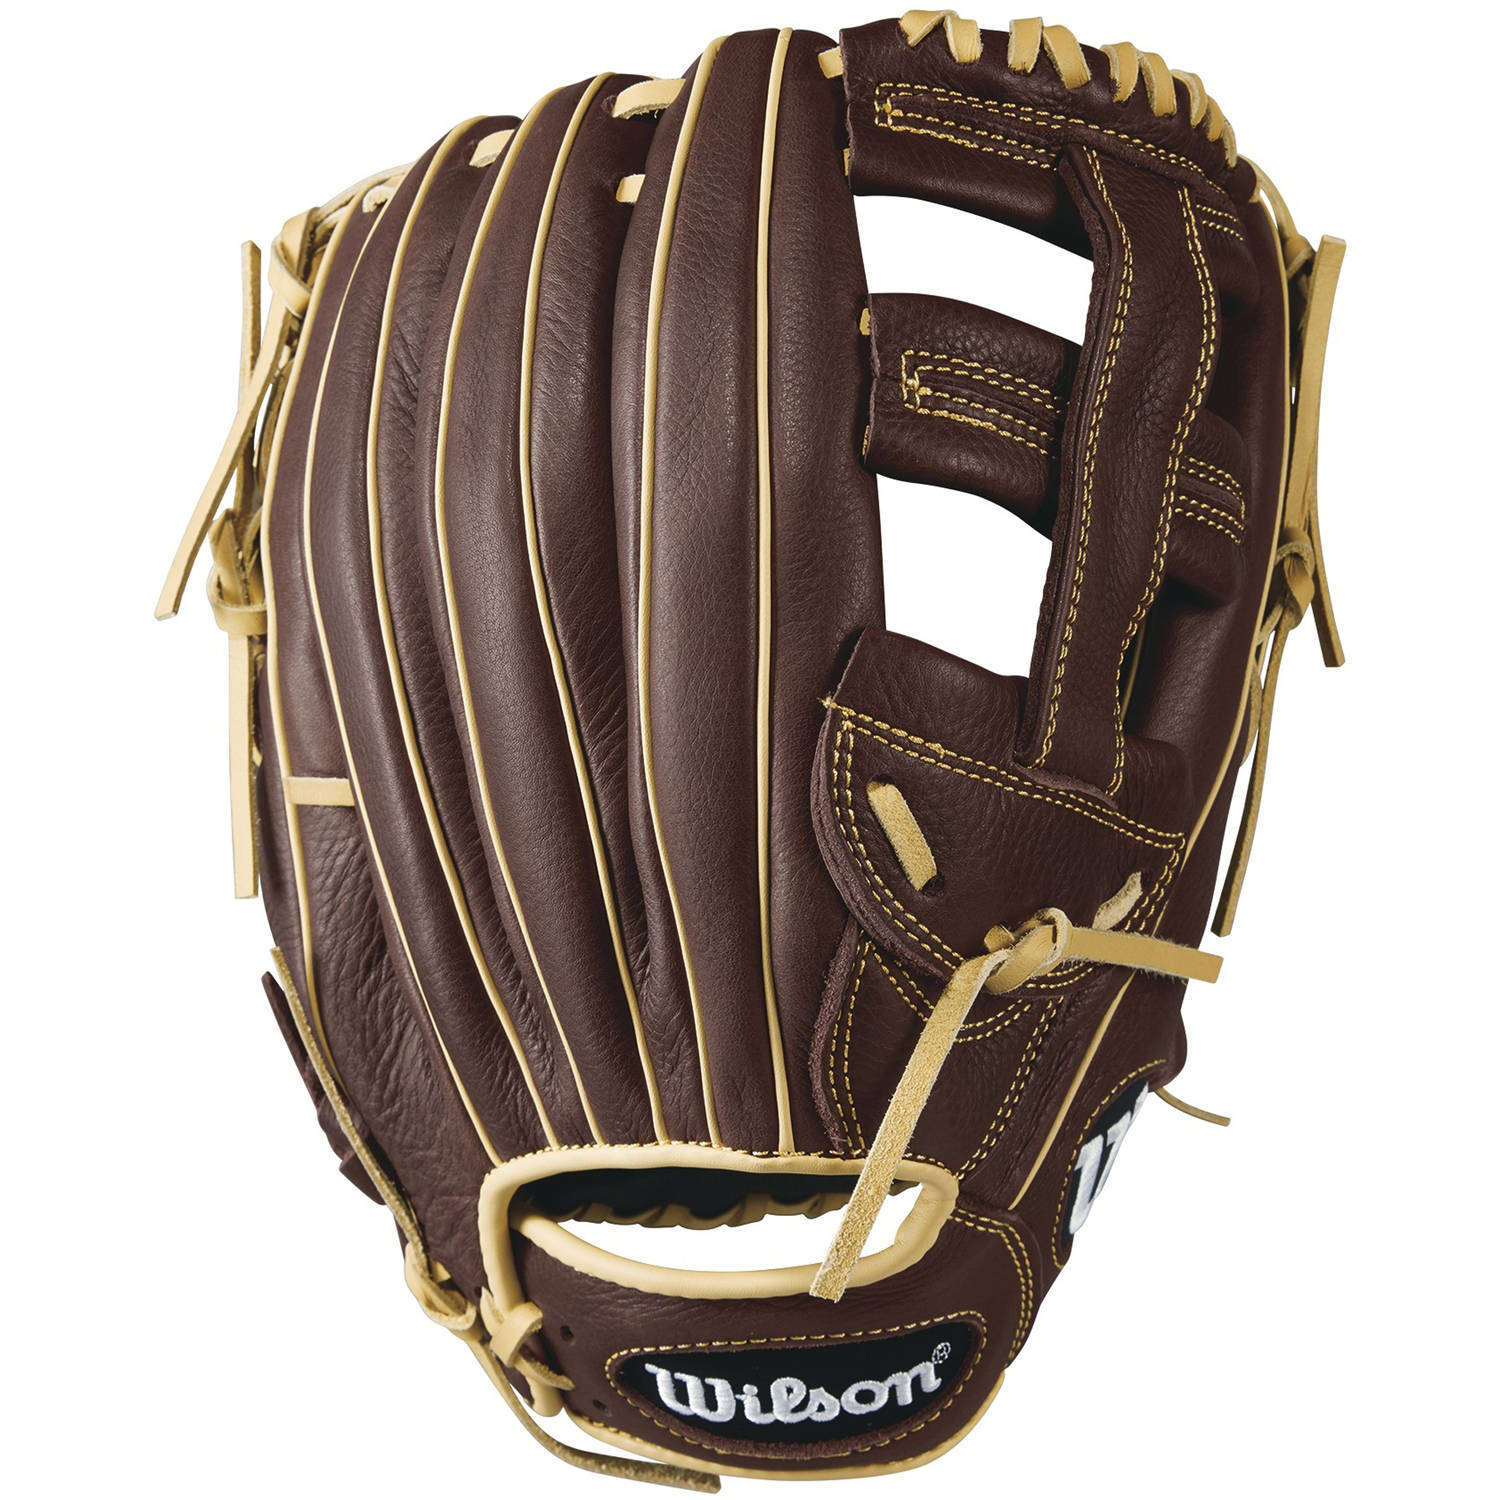 Wilson Sporting Goods Showtime Slowpitch Softball Glove